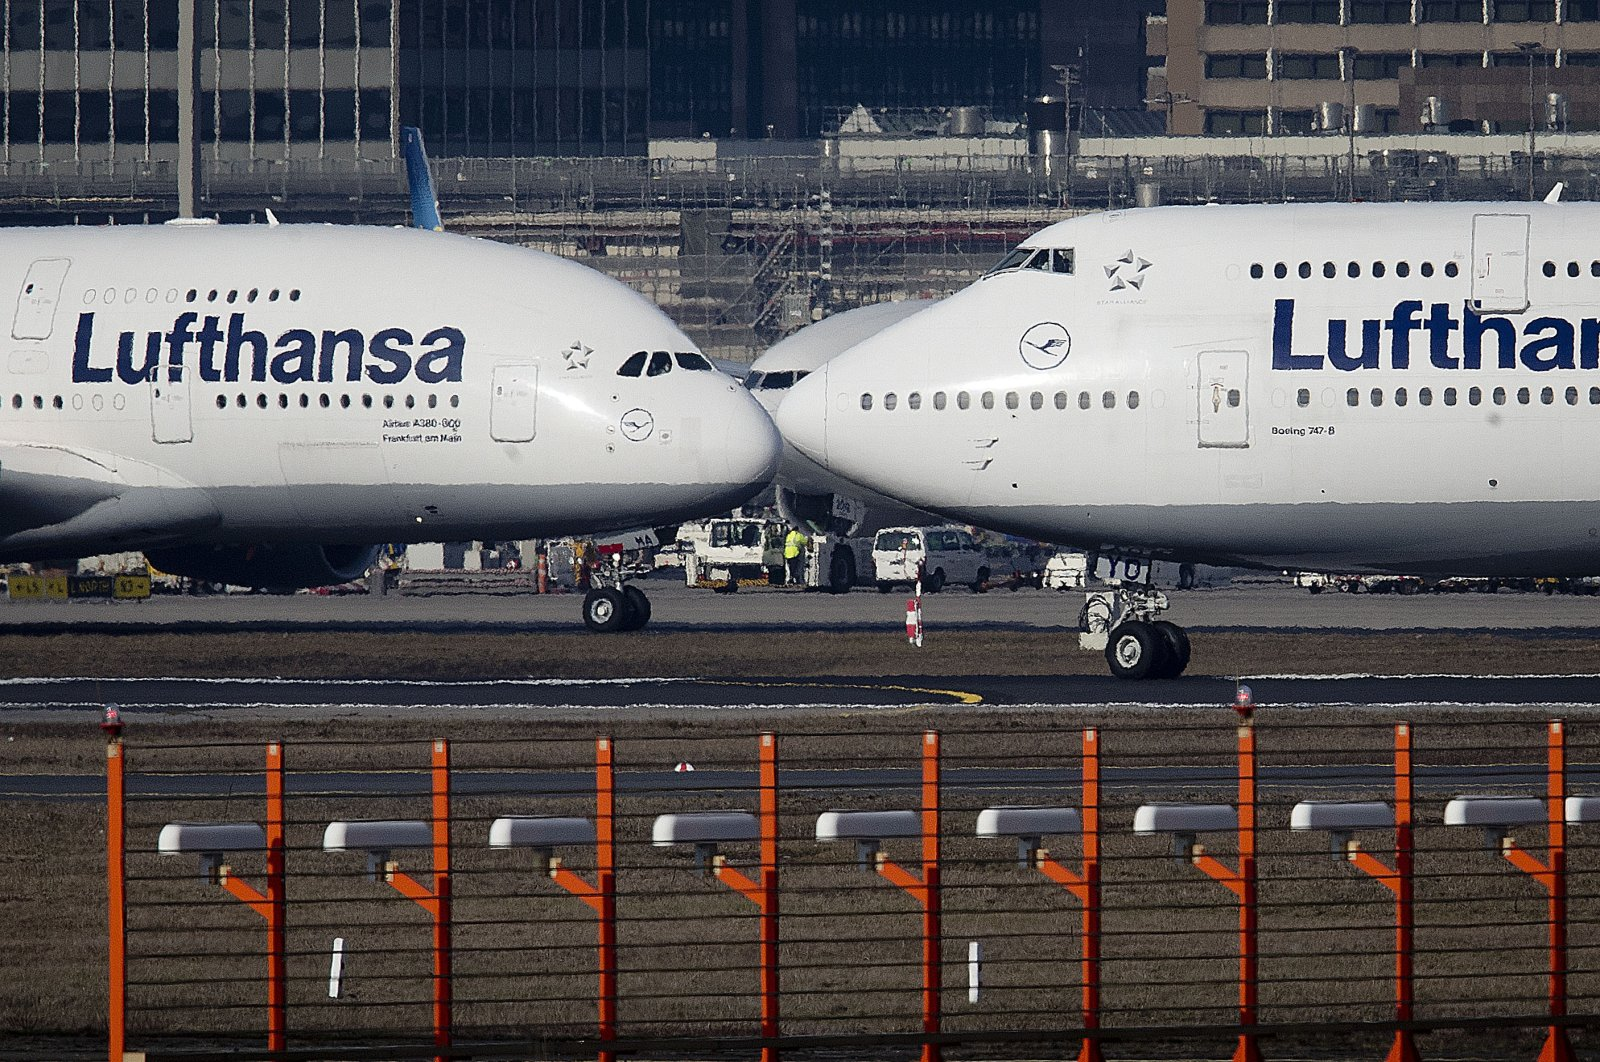 An Airbus A380 (L) and a Boeing 747, both from Lufthansa airlines, pass each other at the airport in Frankfurt, Germany, Feb.14, 2019. (AP Photo)